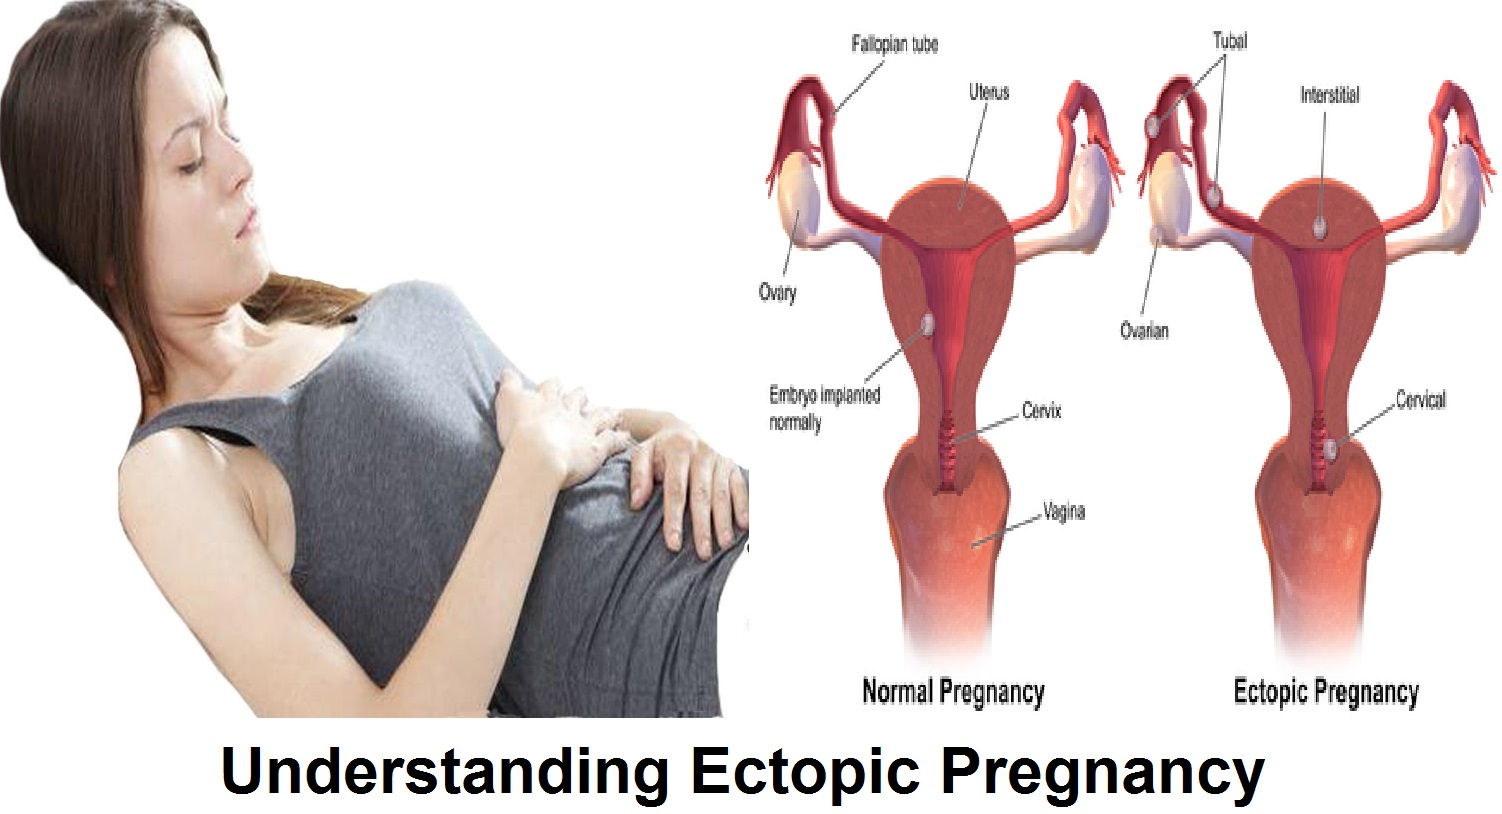 Signs of an ectopic pregnancy in the early stages